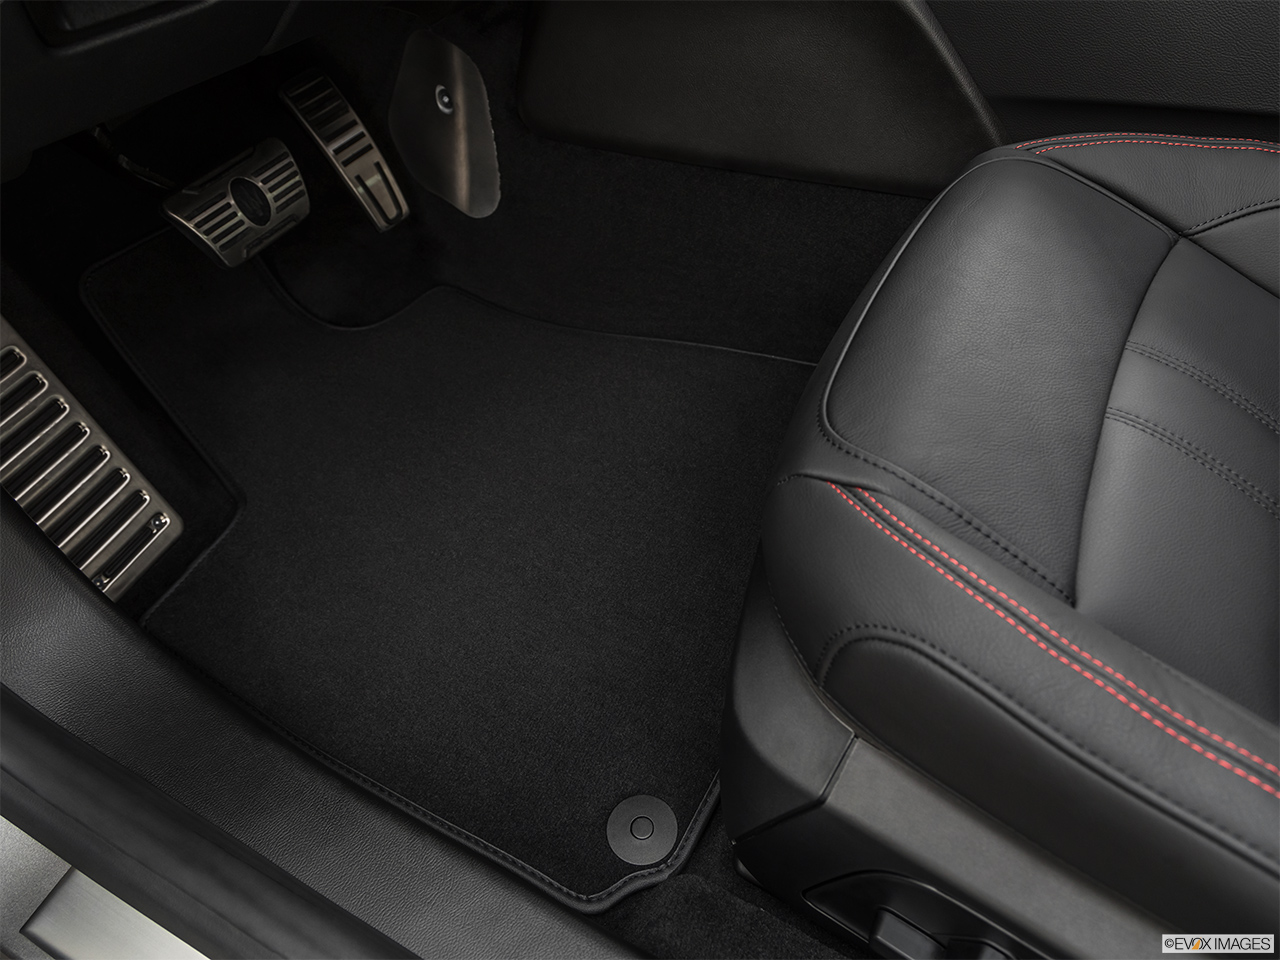 2019 Maserati Ghibli S Gransport Driver's floor mat and pedals. Mid-seat level from outside looking in.